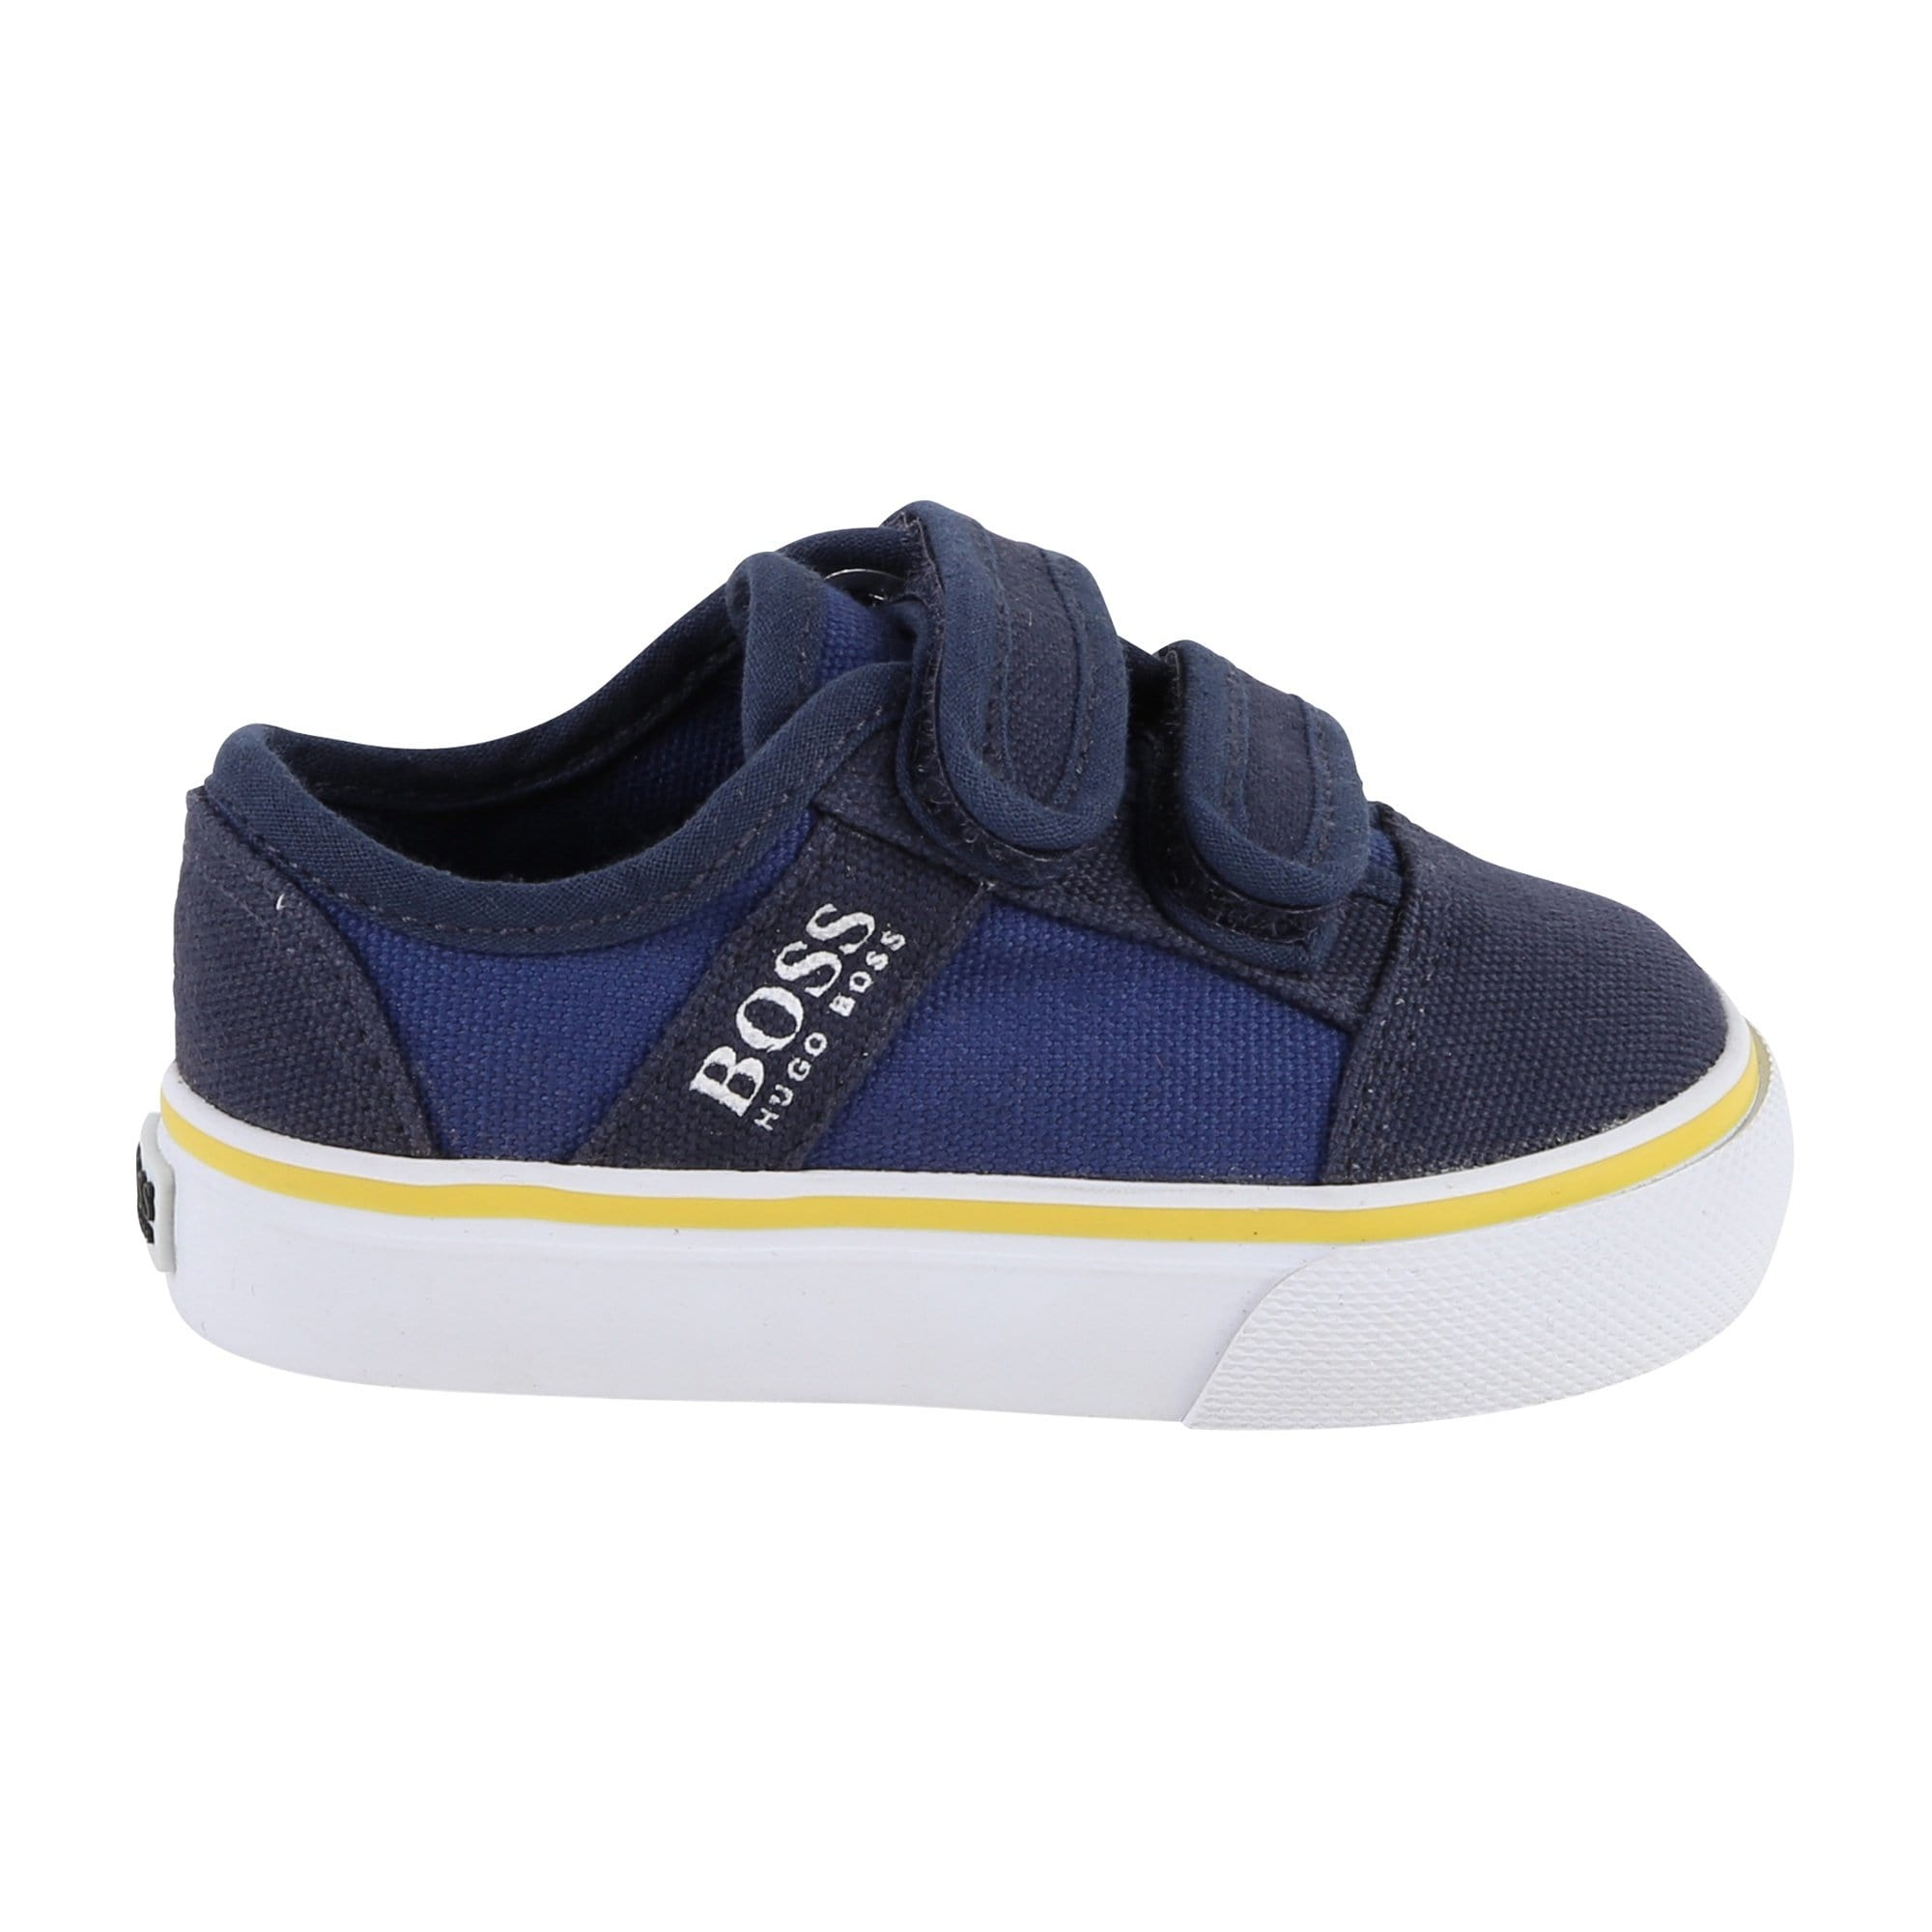 Hugo Boss Velco Trainers Younger Boys (4703509807235)